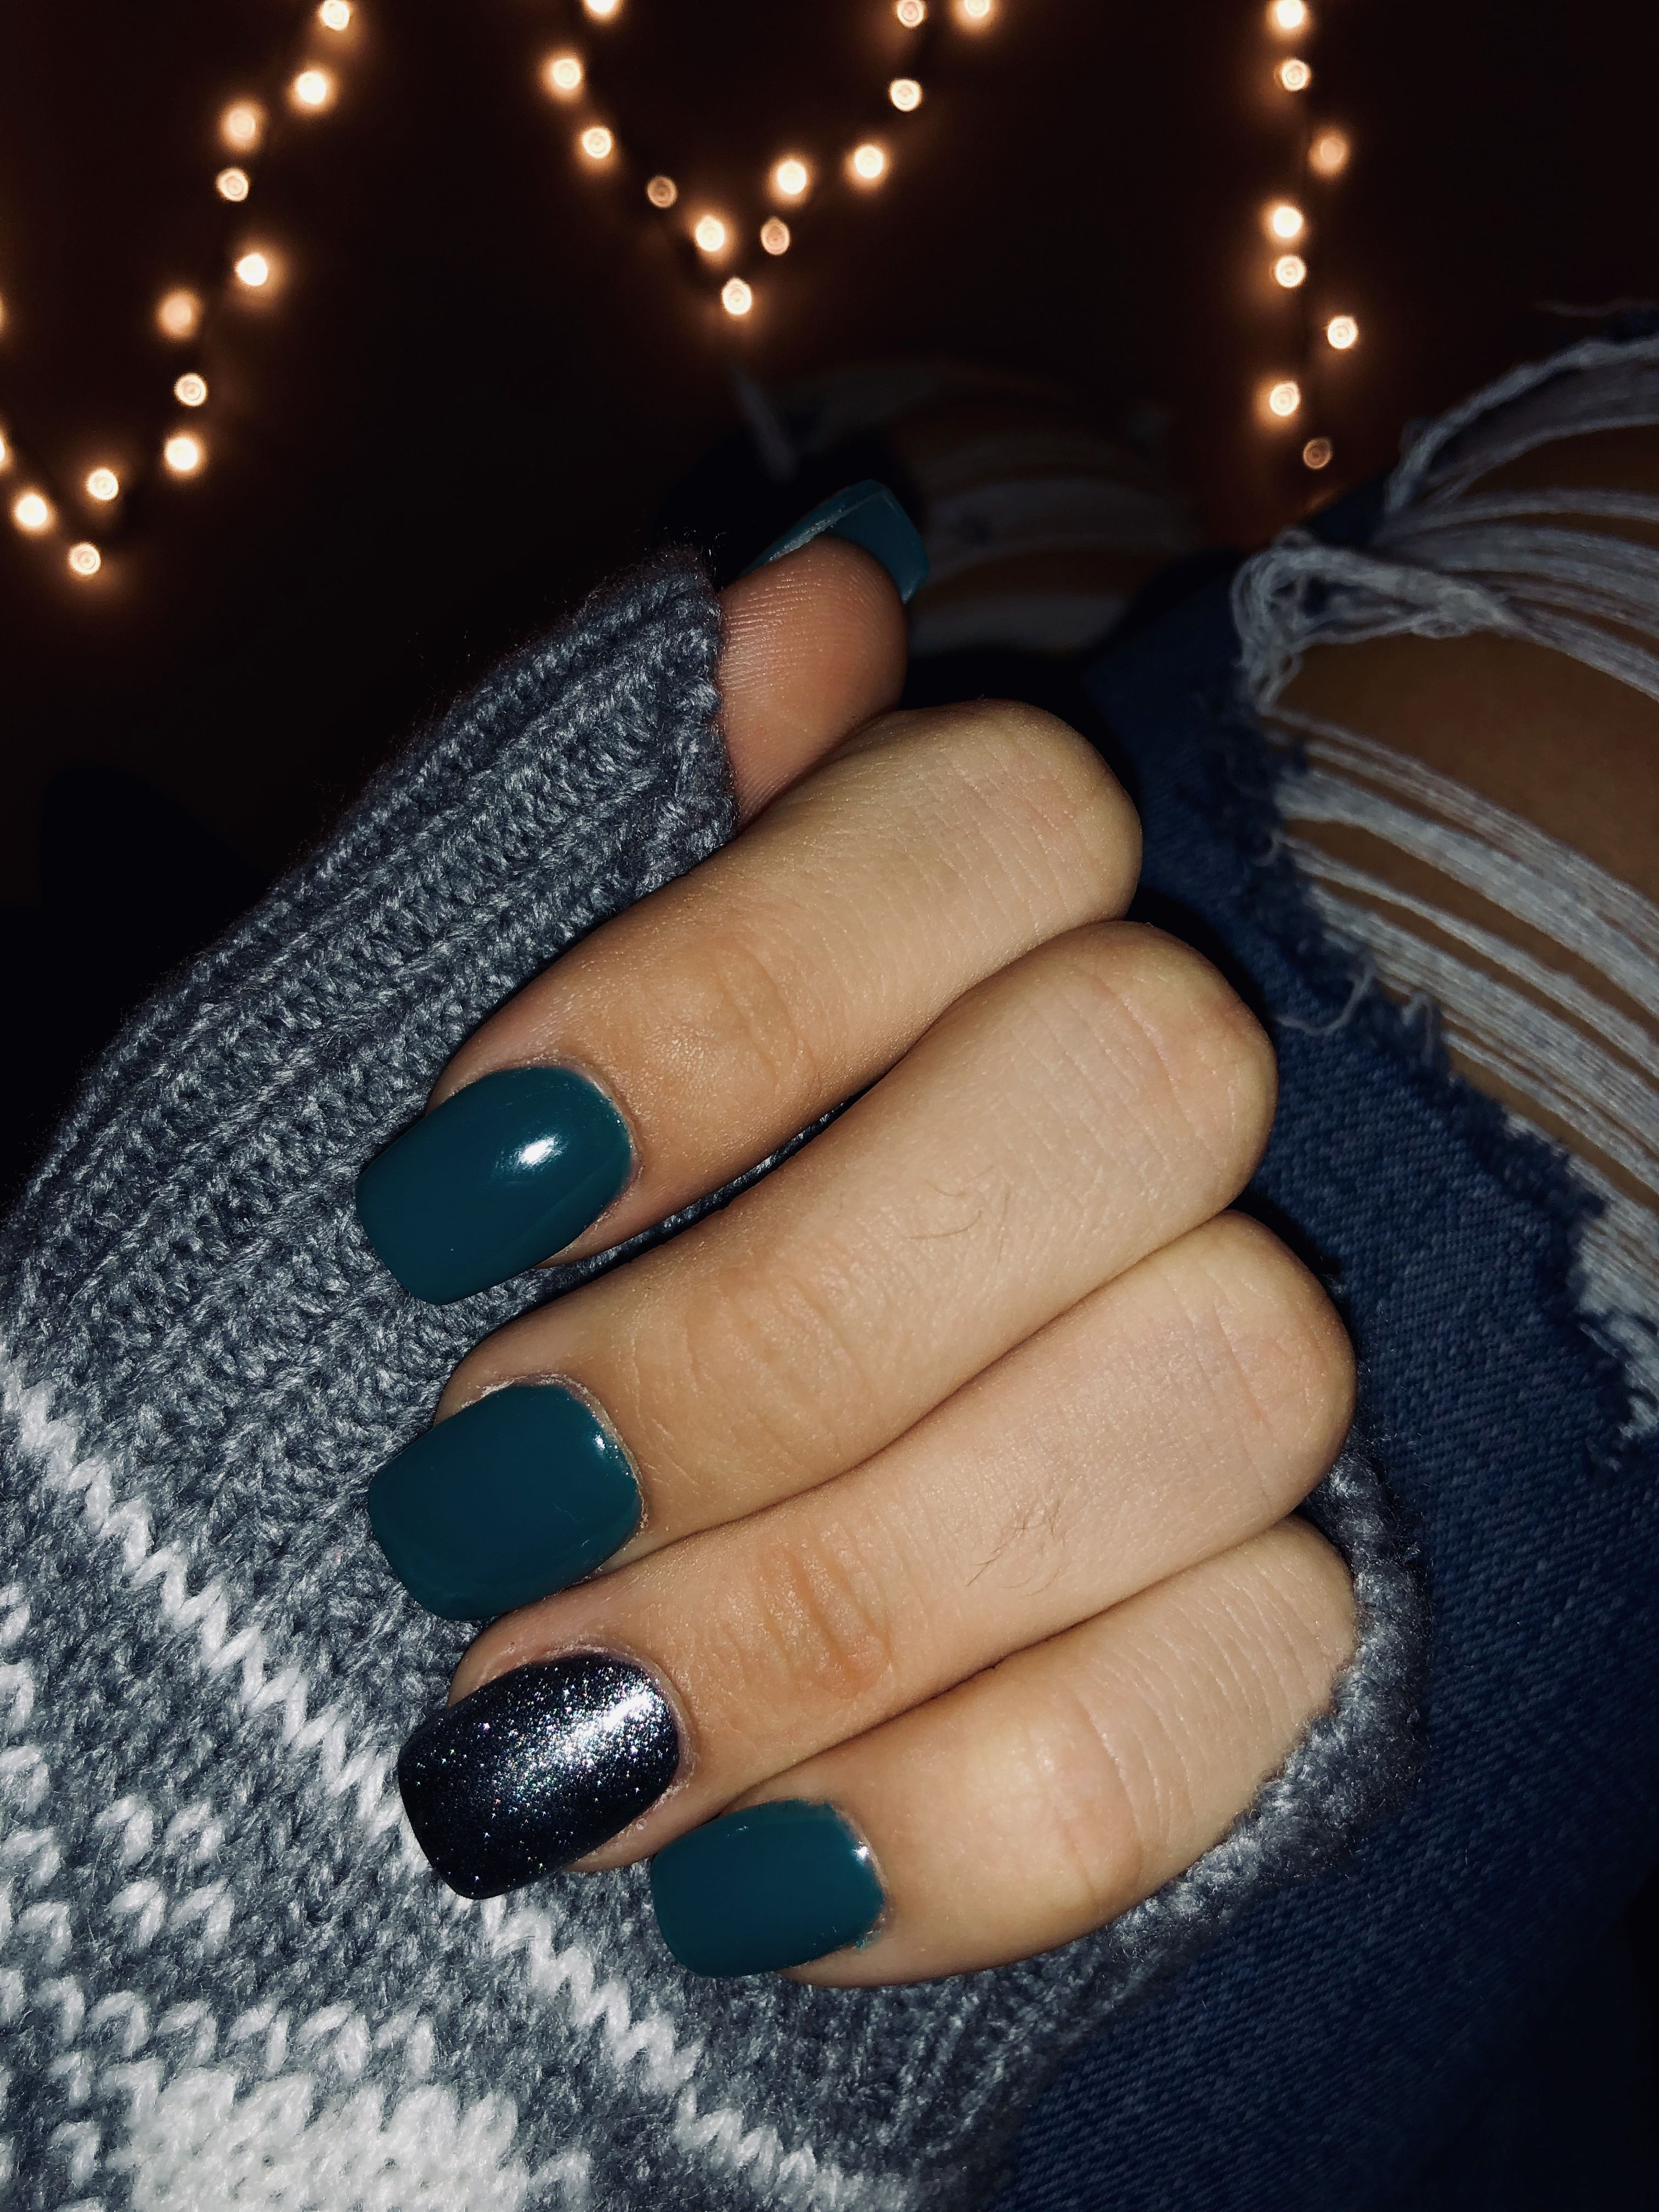 First Time Getting My Nails Done Nails Pretty Nails Cute Nails